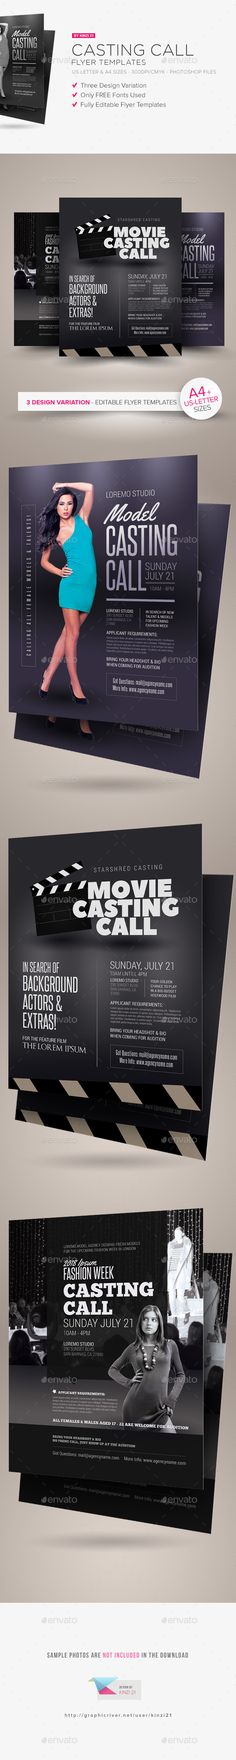 Casting Call Flyer Templates - Download the source-files: http://goo.gl/izdjXc